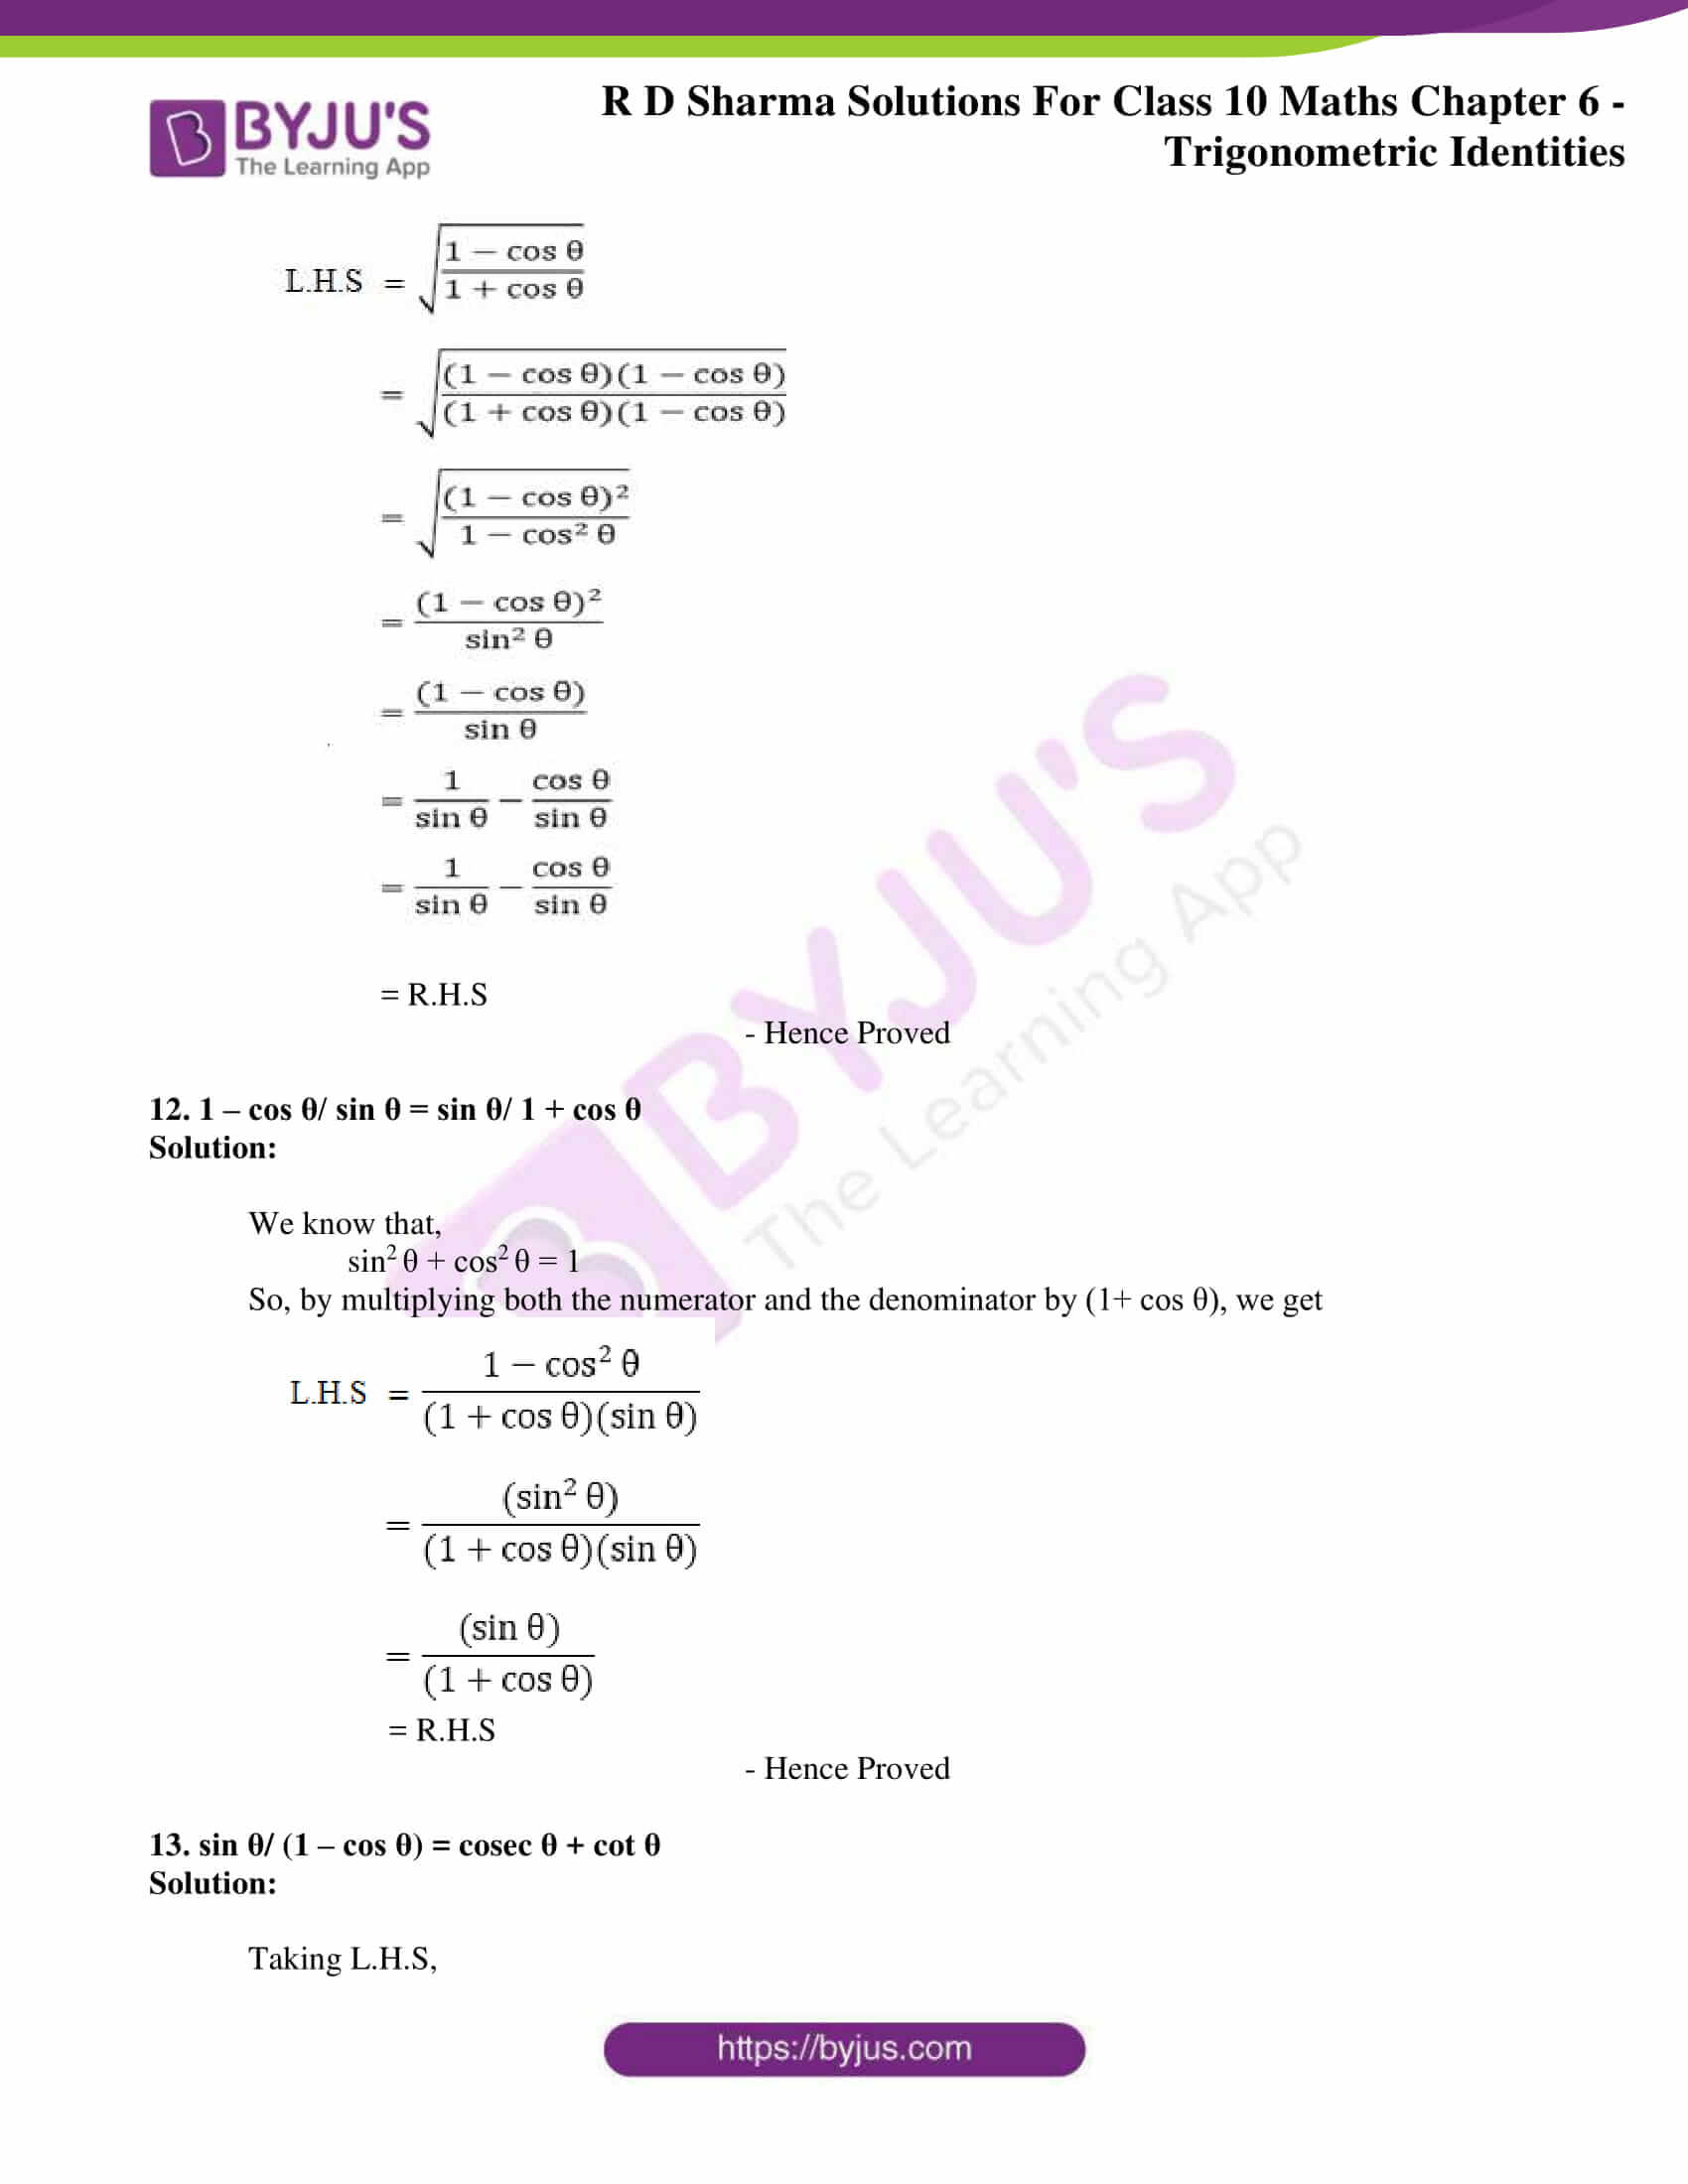 RD Sharma Solutions for Class 10 Chapter 6 Trigonometric Identities 06